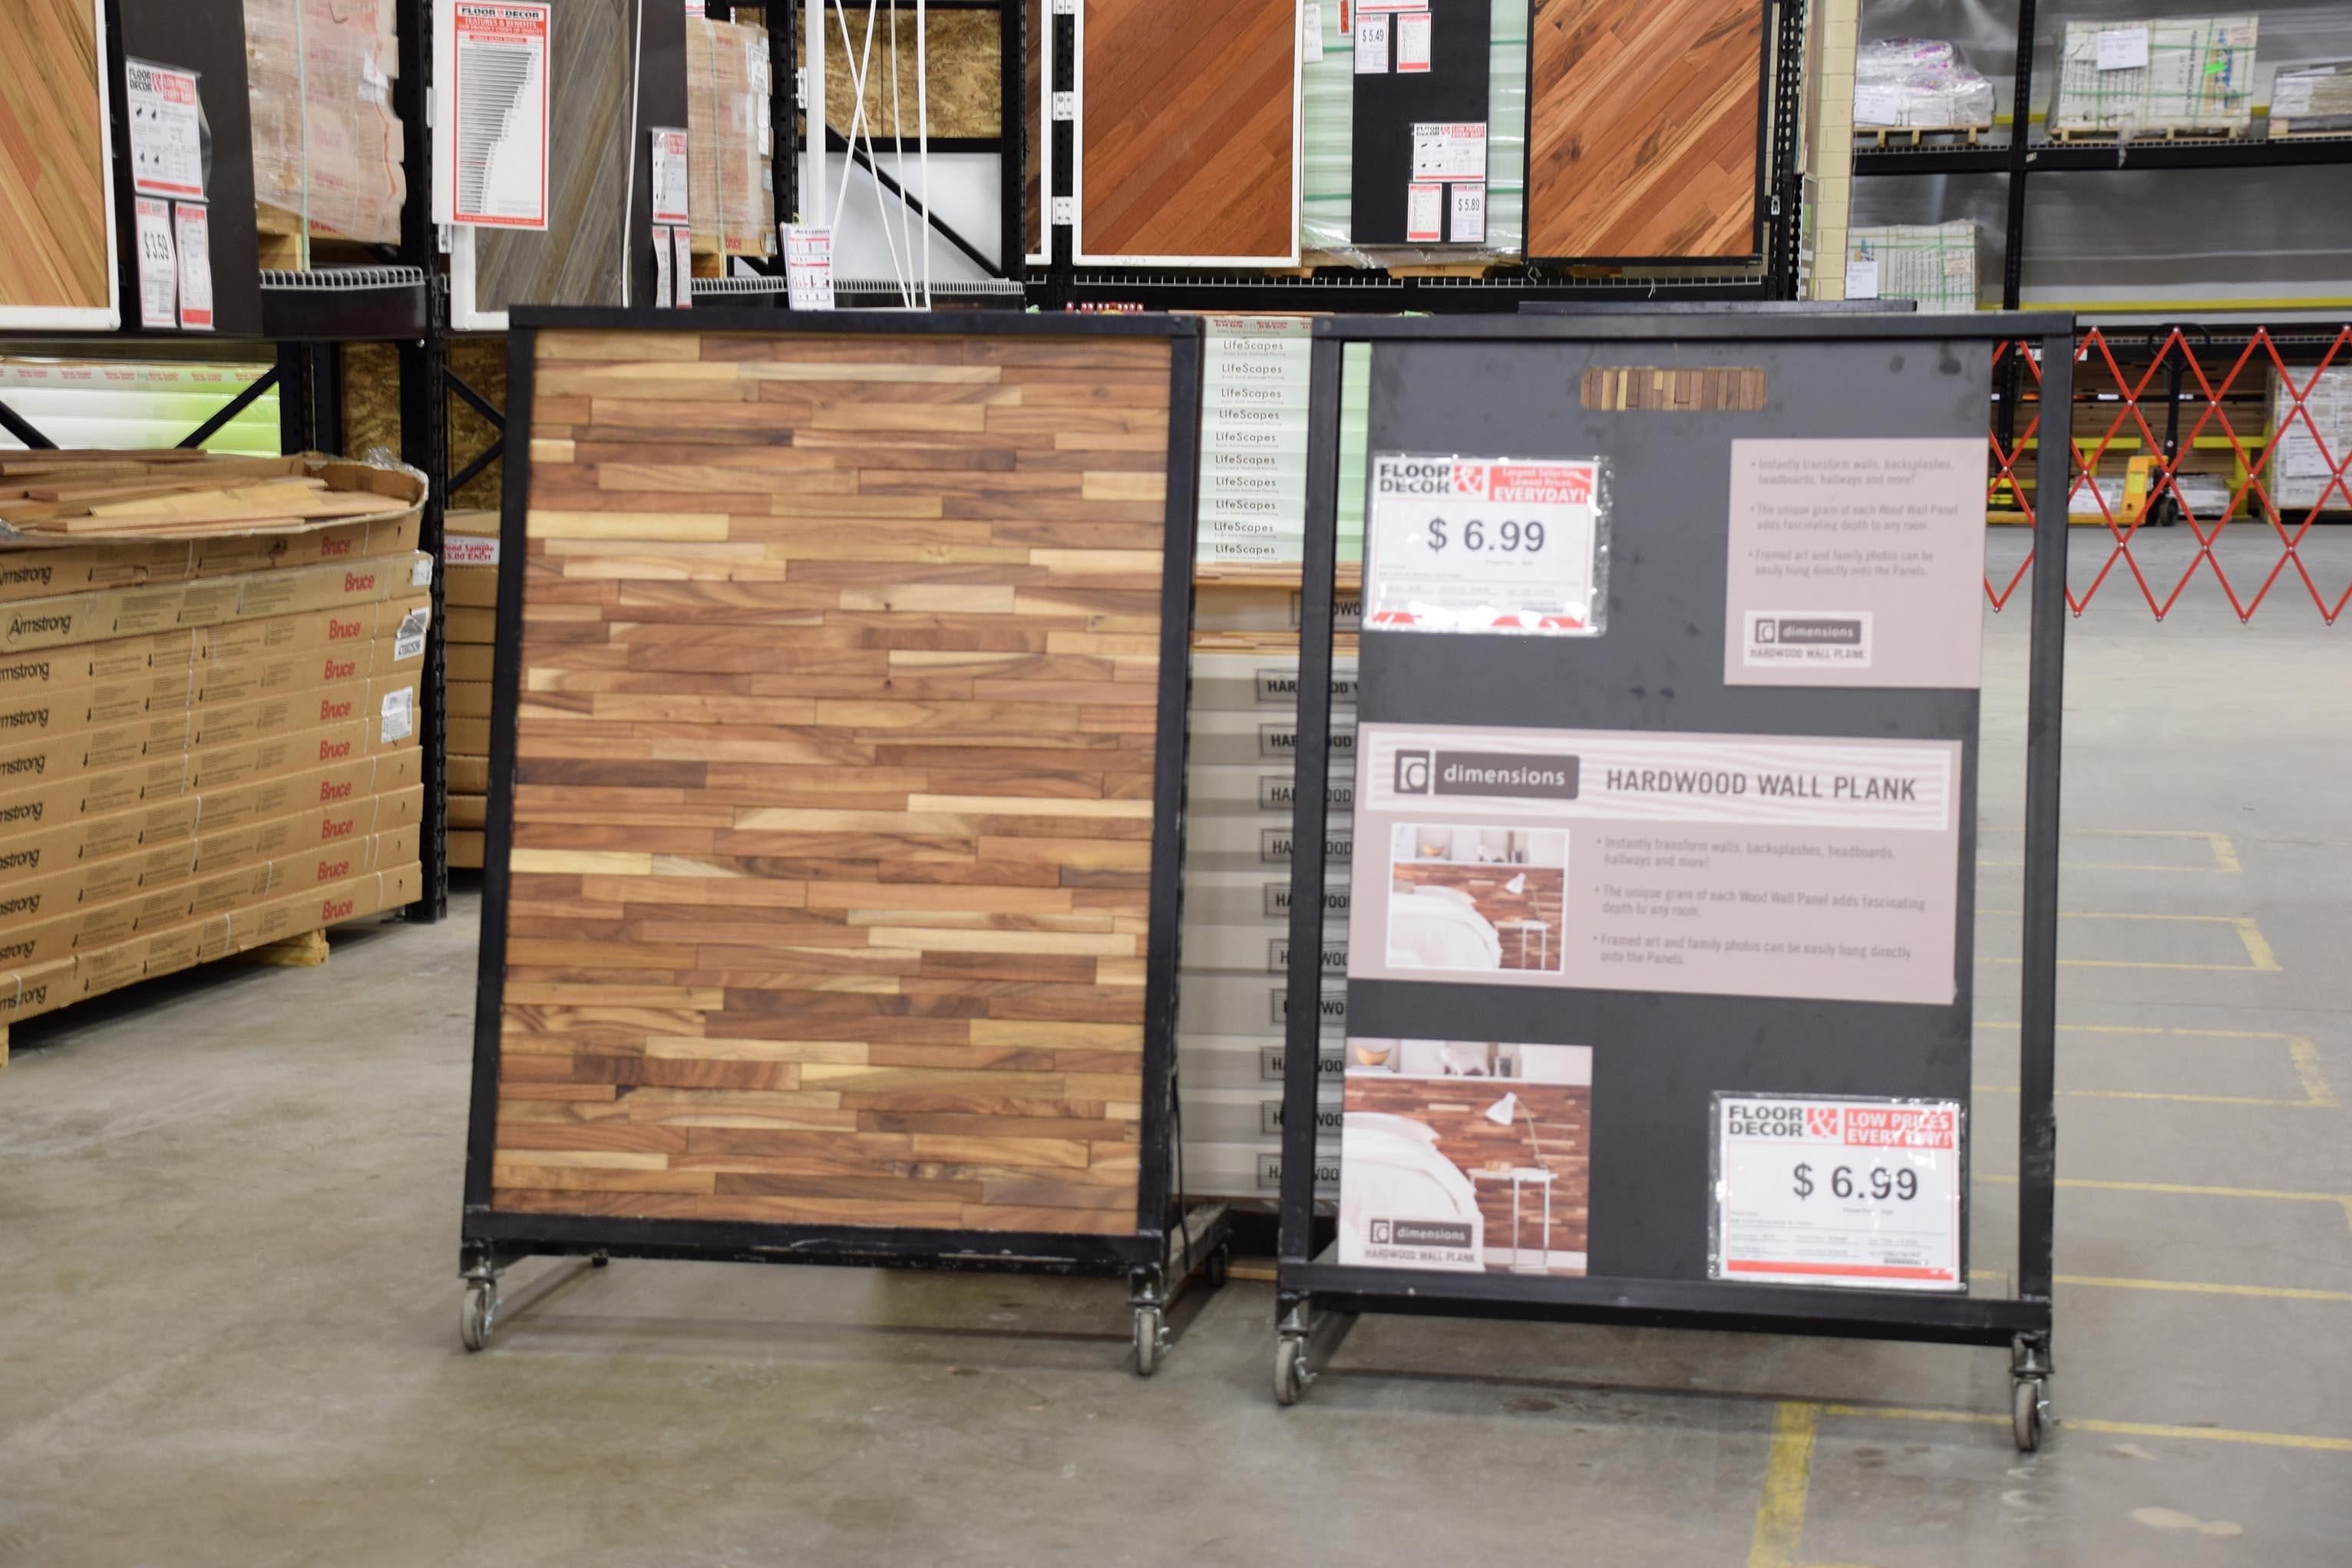 lifescapes hardwood flooring reviews of floor decor 5651 state highway 121 the colony tx hardware stores for floor decor 5651 state highway 121 the colony tx hardware stores mapquest